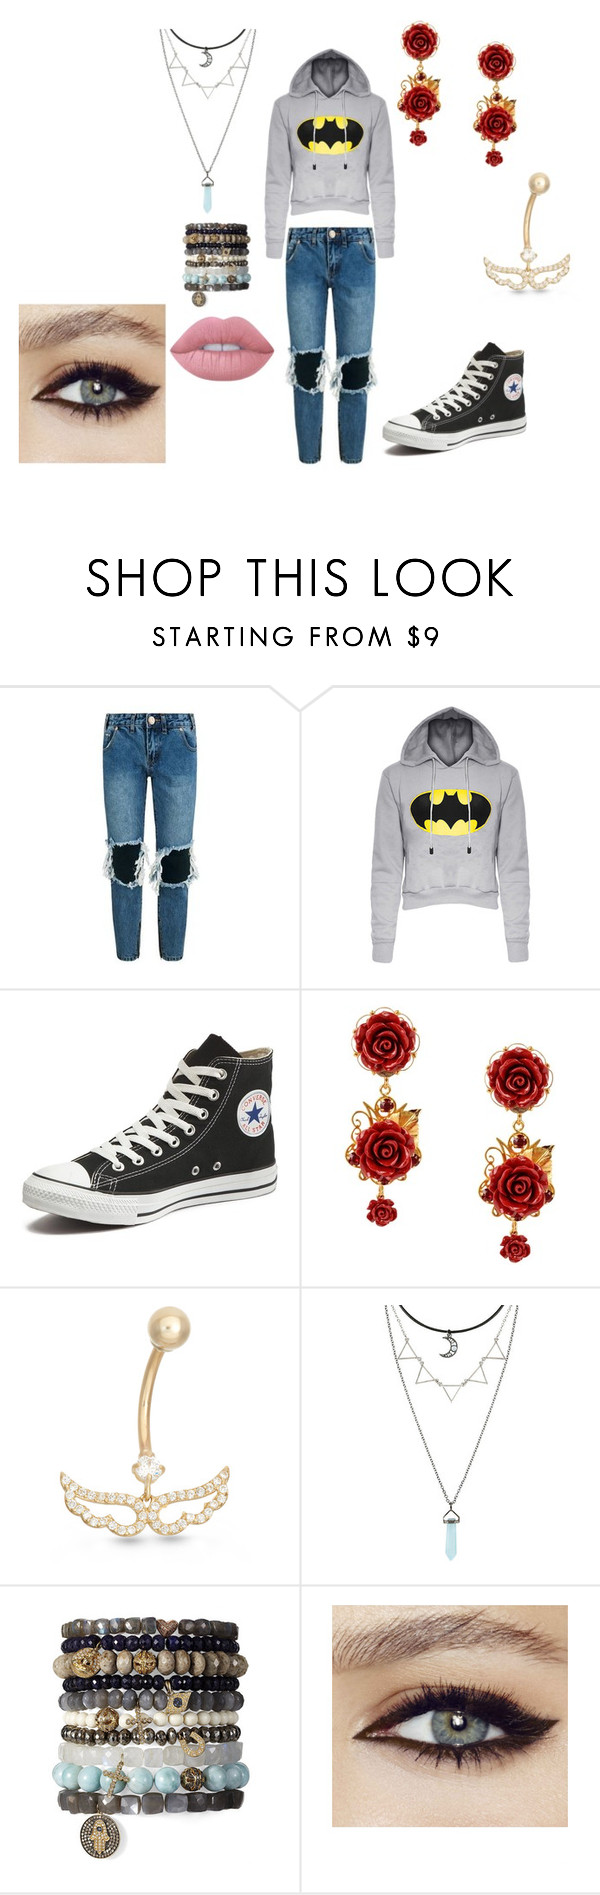 """Everyday outfit #28"" by in-seva on Polyvore featuring One Teaspoon, Converse, Dolce&Gabbana, Gioelli Designs and Lime Crime"